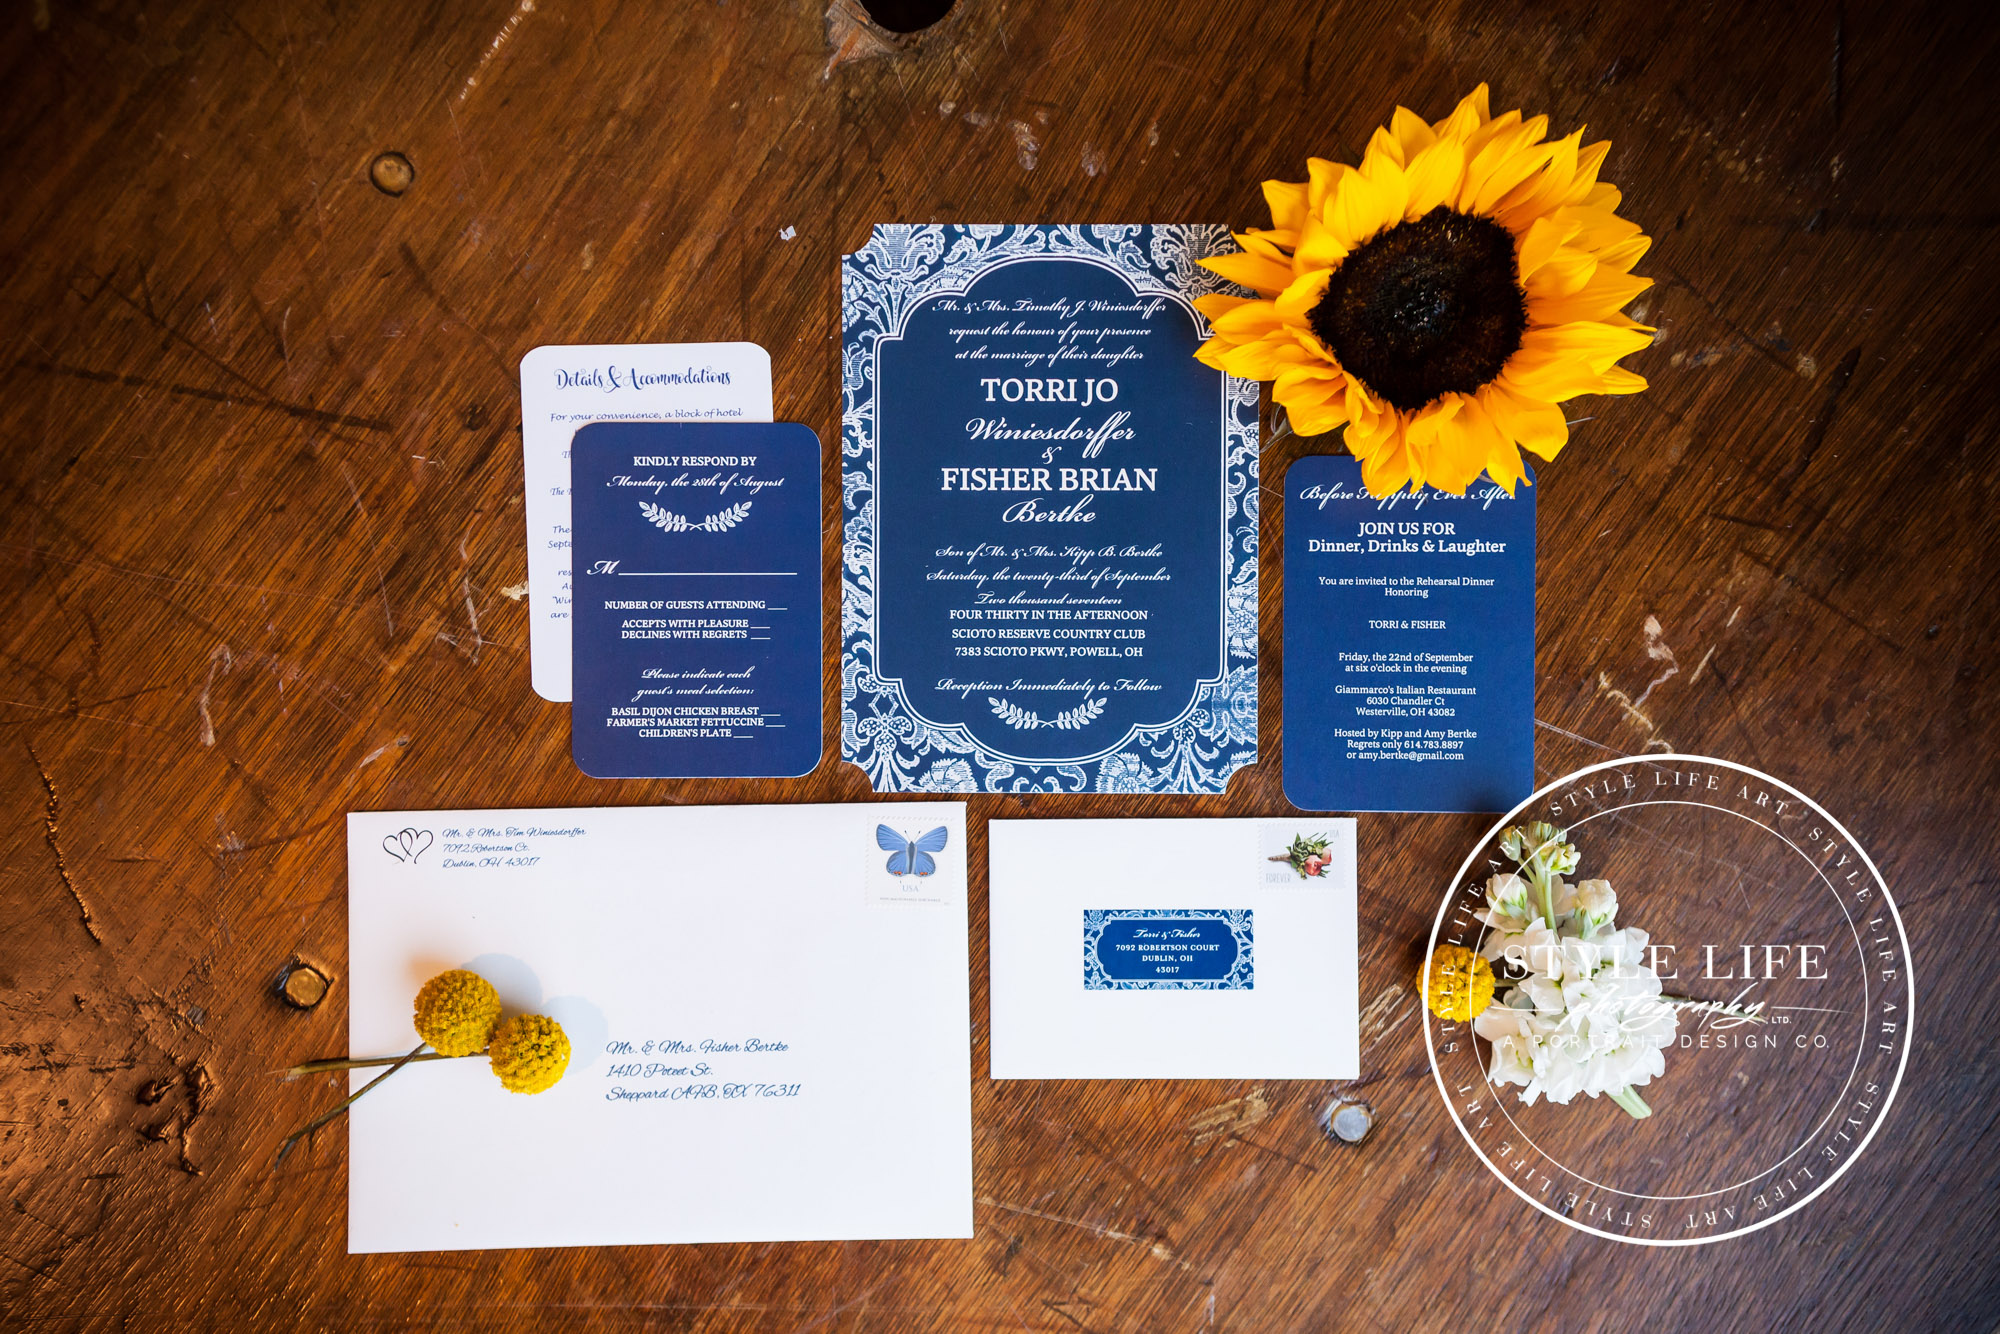 Torri & Fisher Wedding-005-WEB